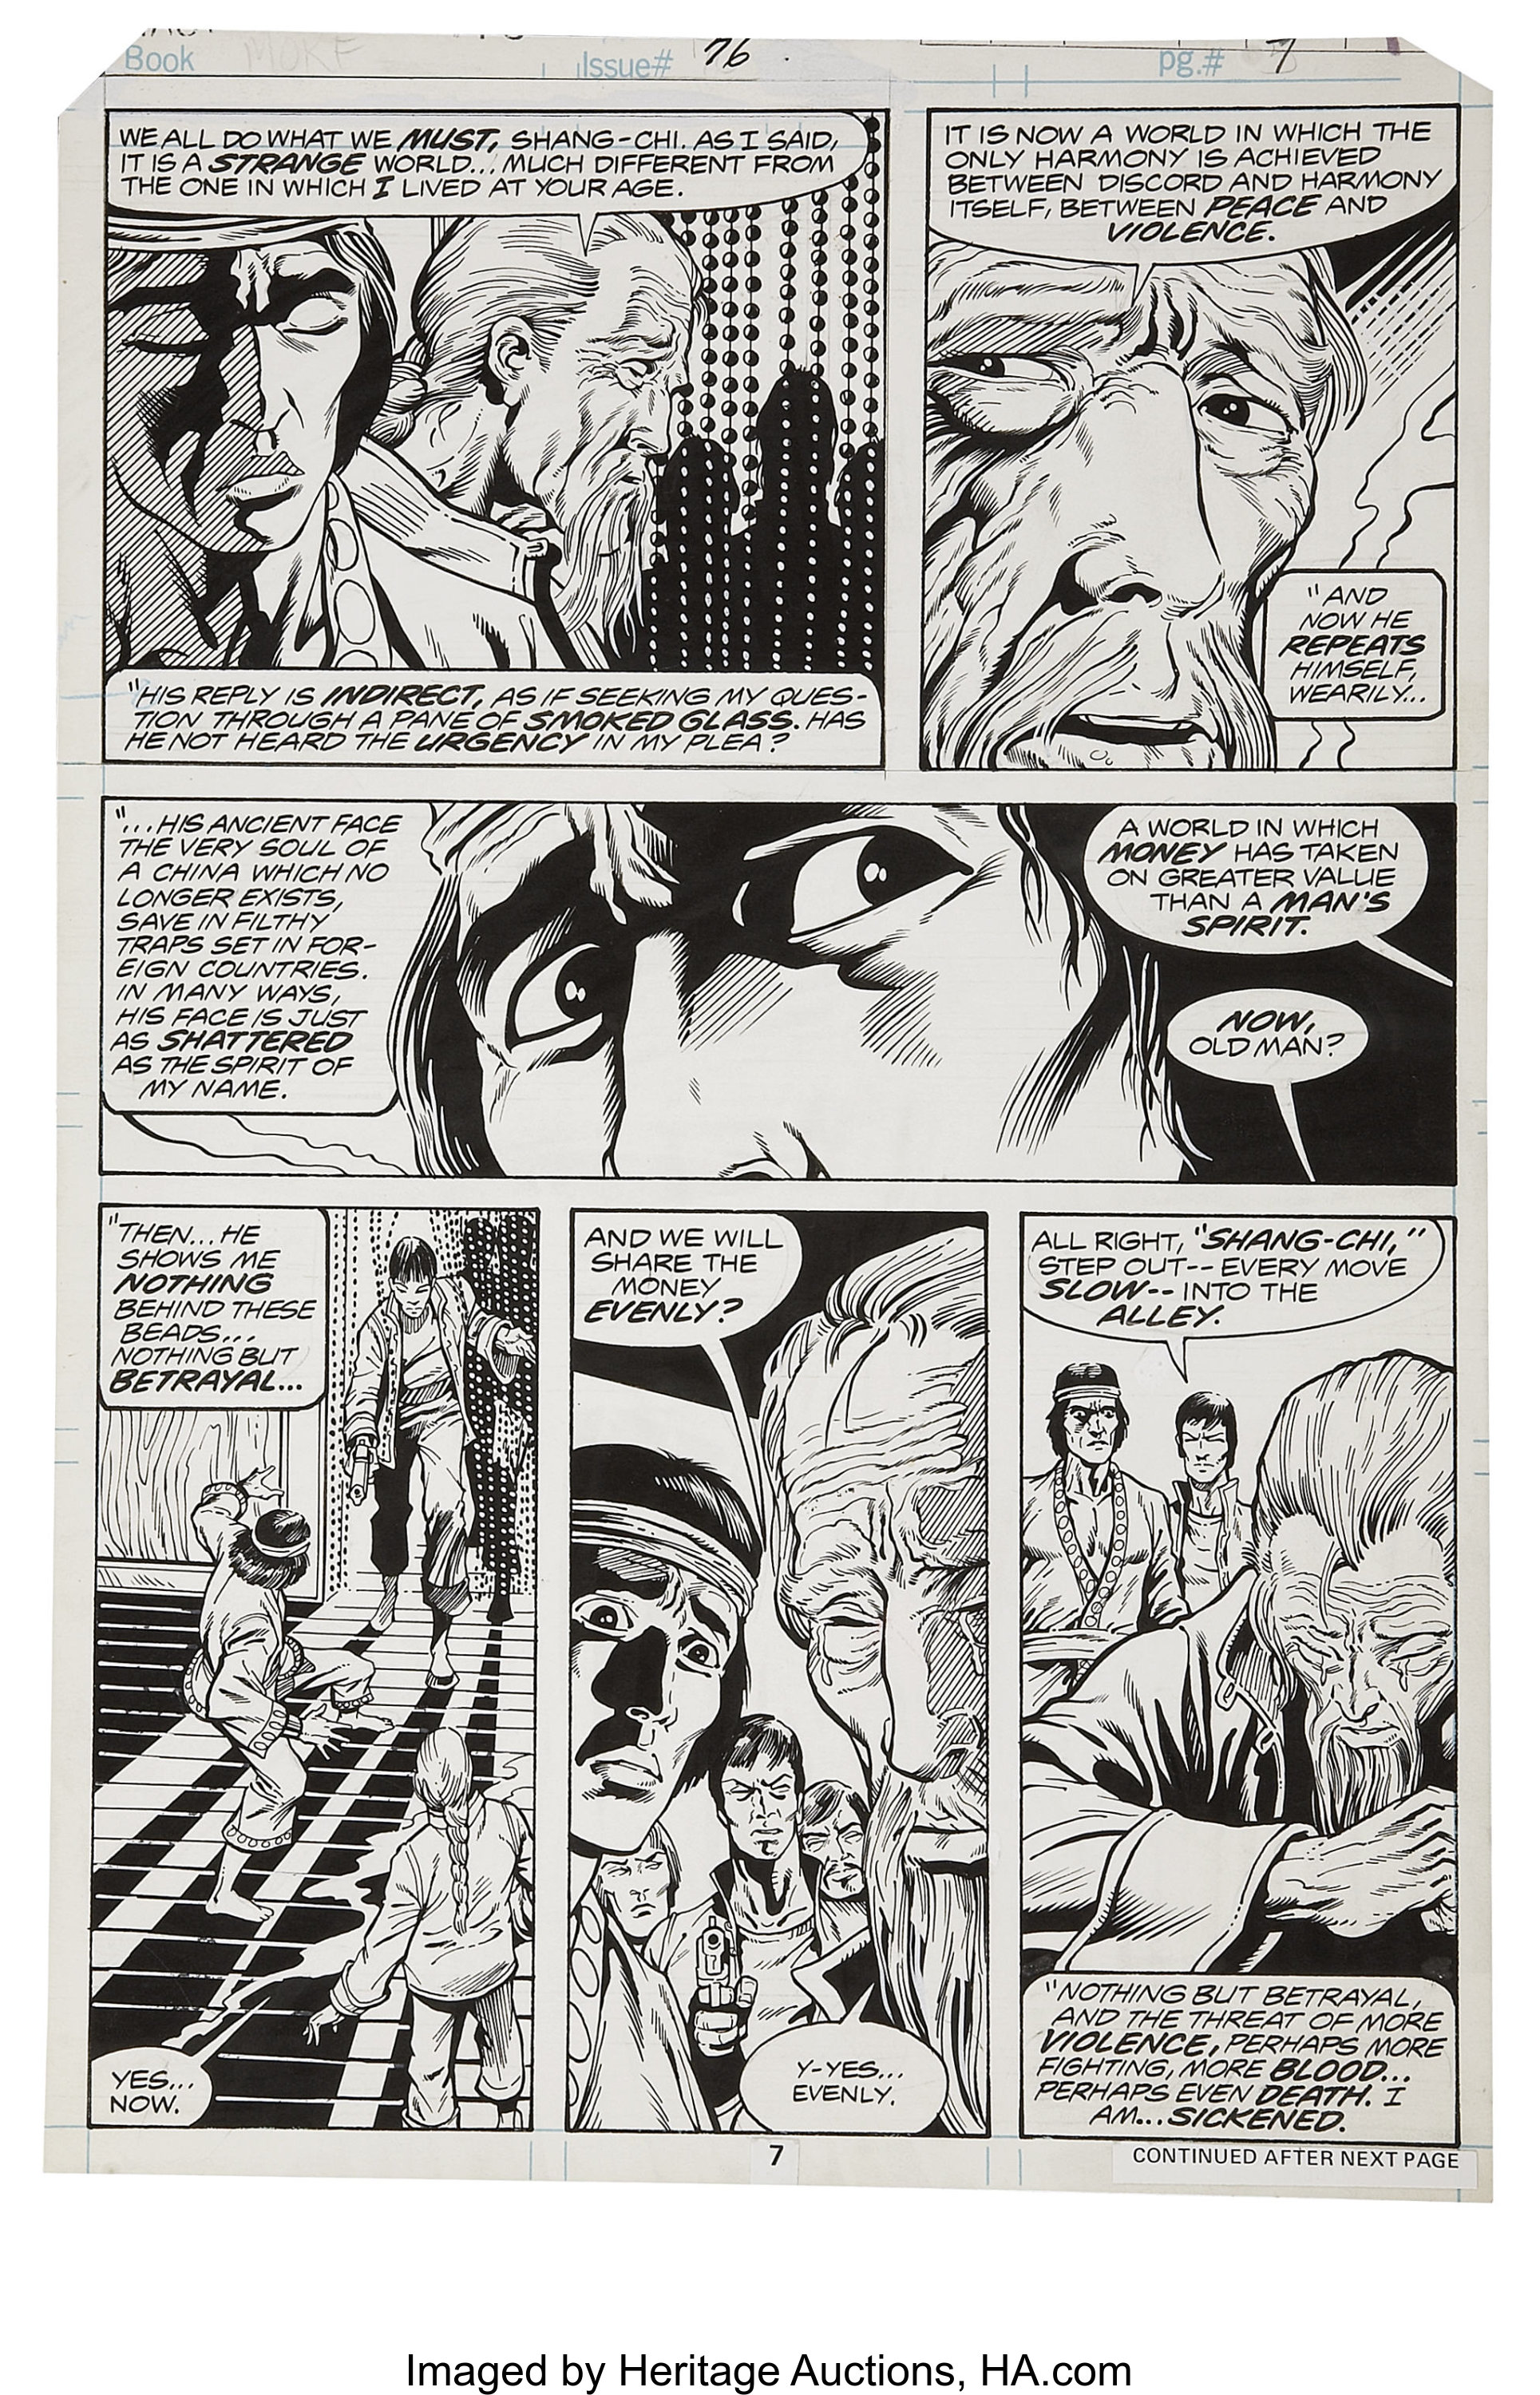 Mike Zeck and Gene Day - Master of Kung Fu #76, page 7